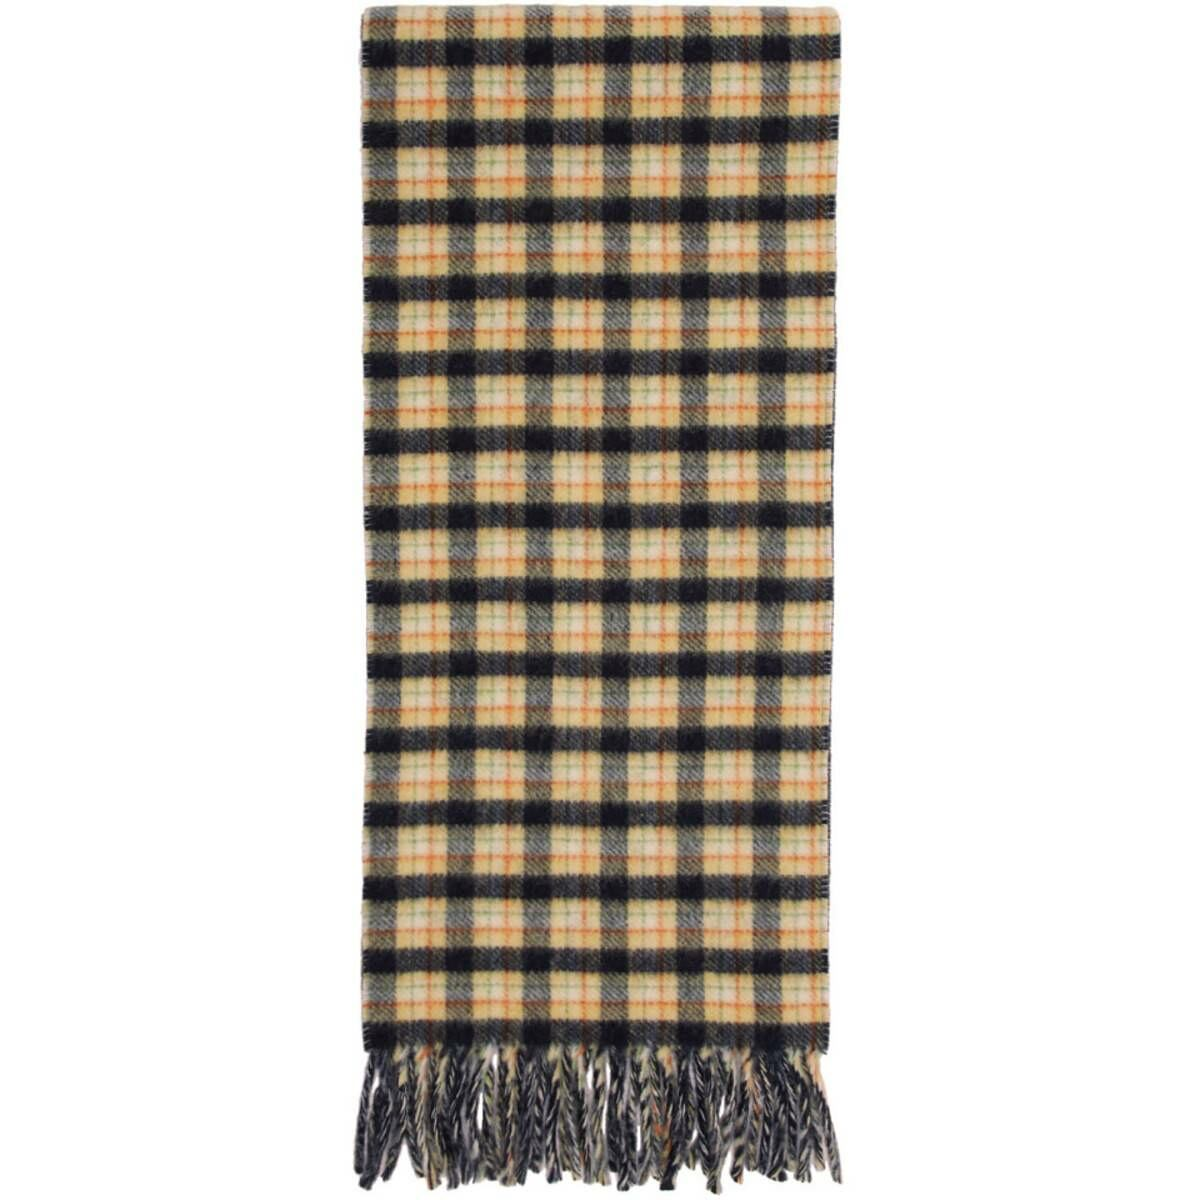 Gucci Navy and Yellow Wool Check GG Scarf Ssense USA MEN Men ACCESSORIES Mens SCARFS